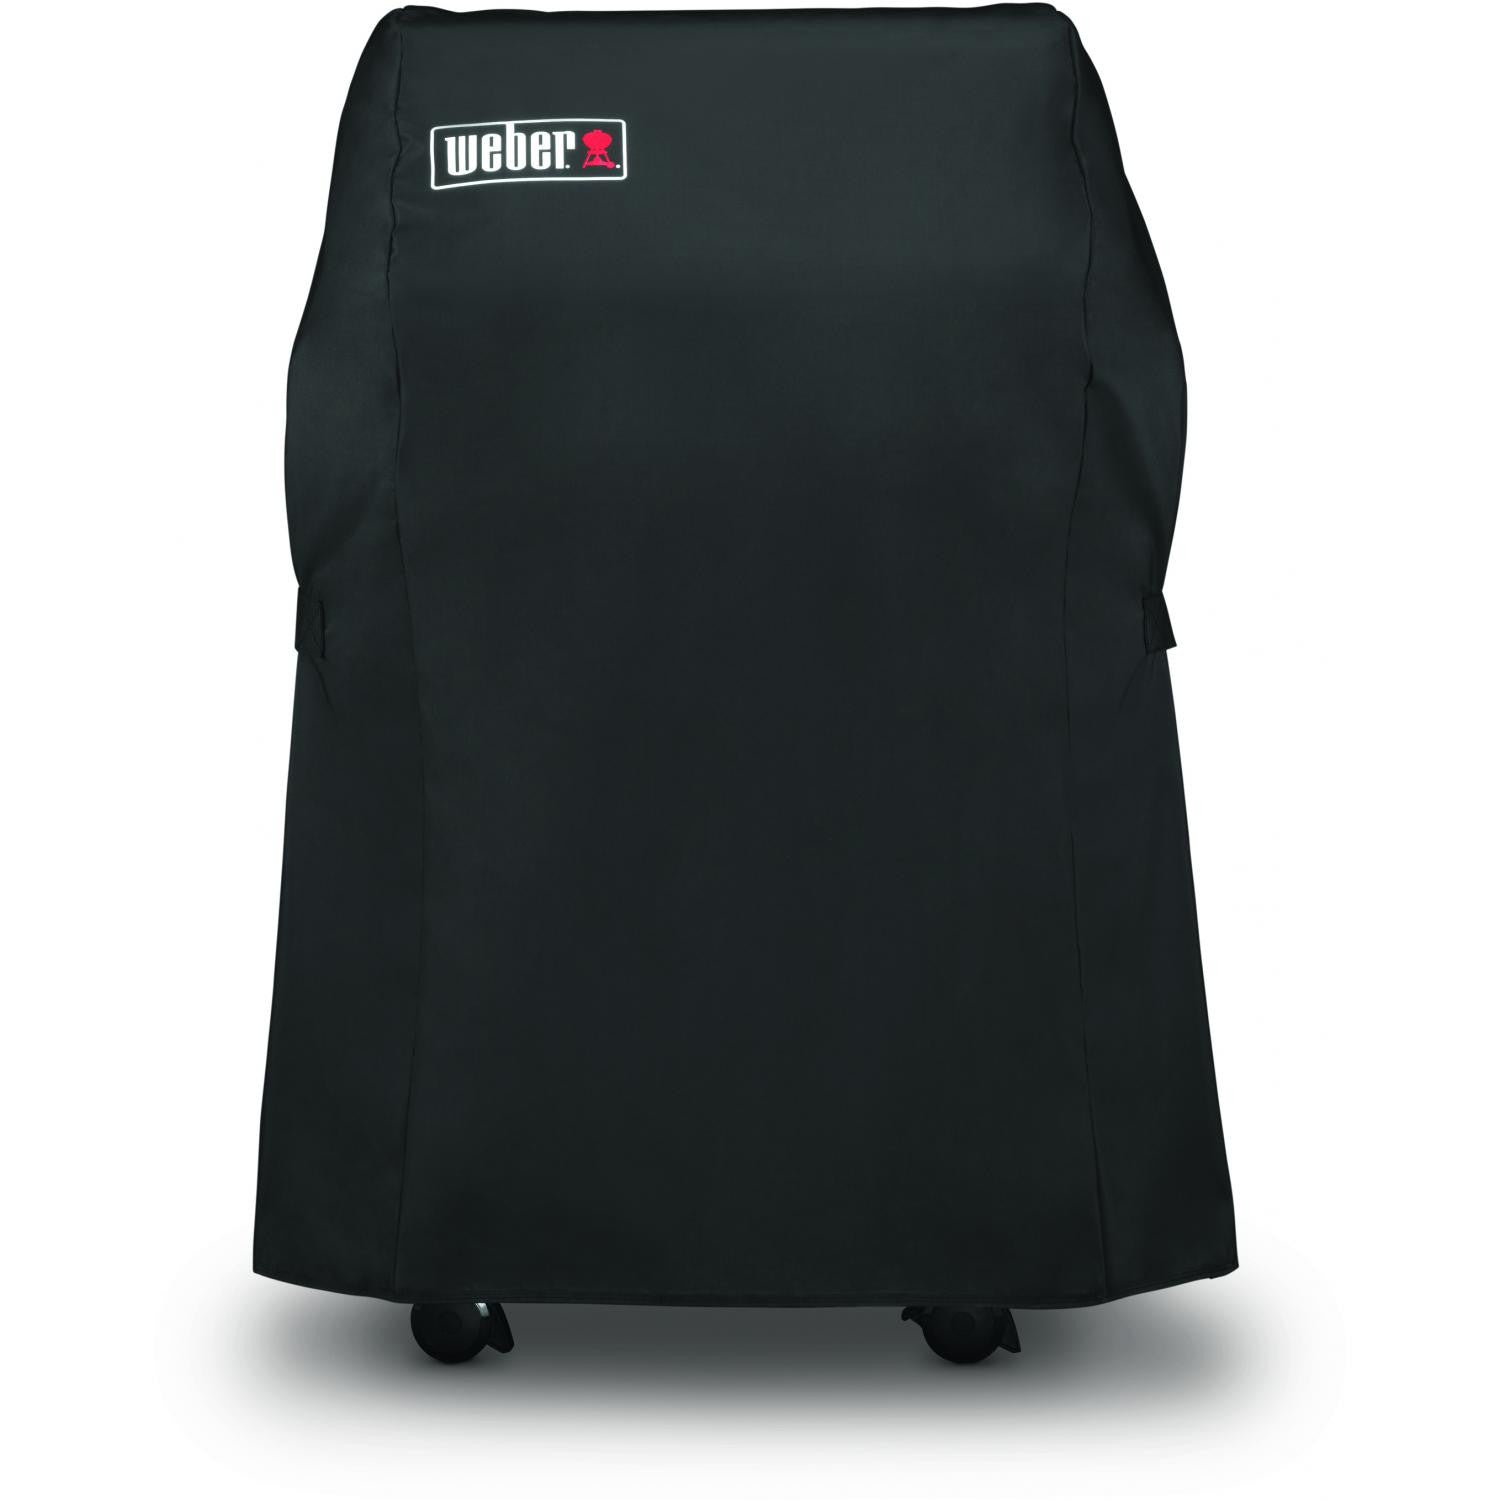 Weber 7105 Premium Grill Cover For Spirit 200 Series Gas Grills